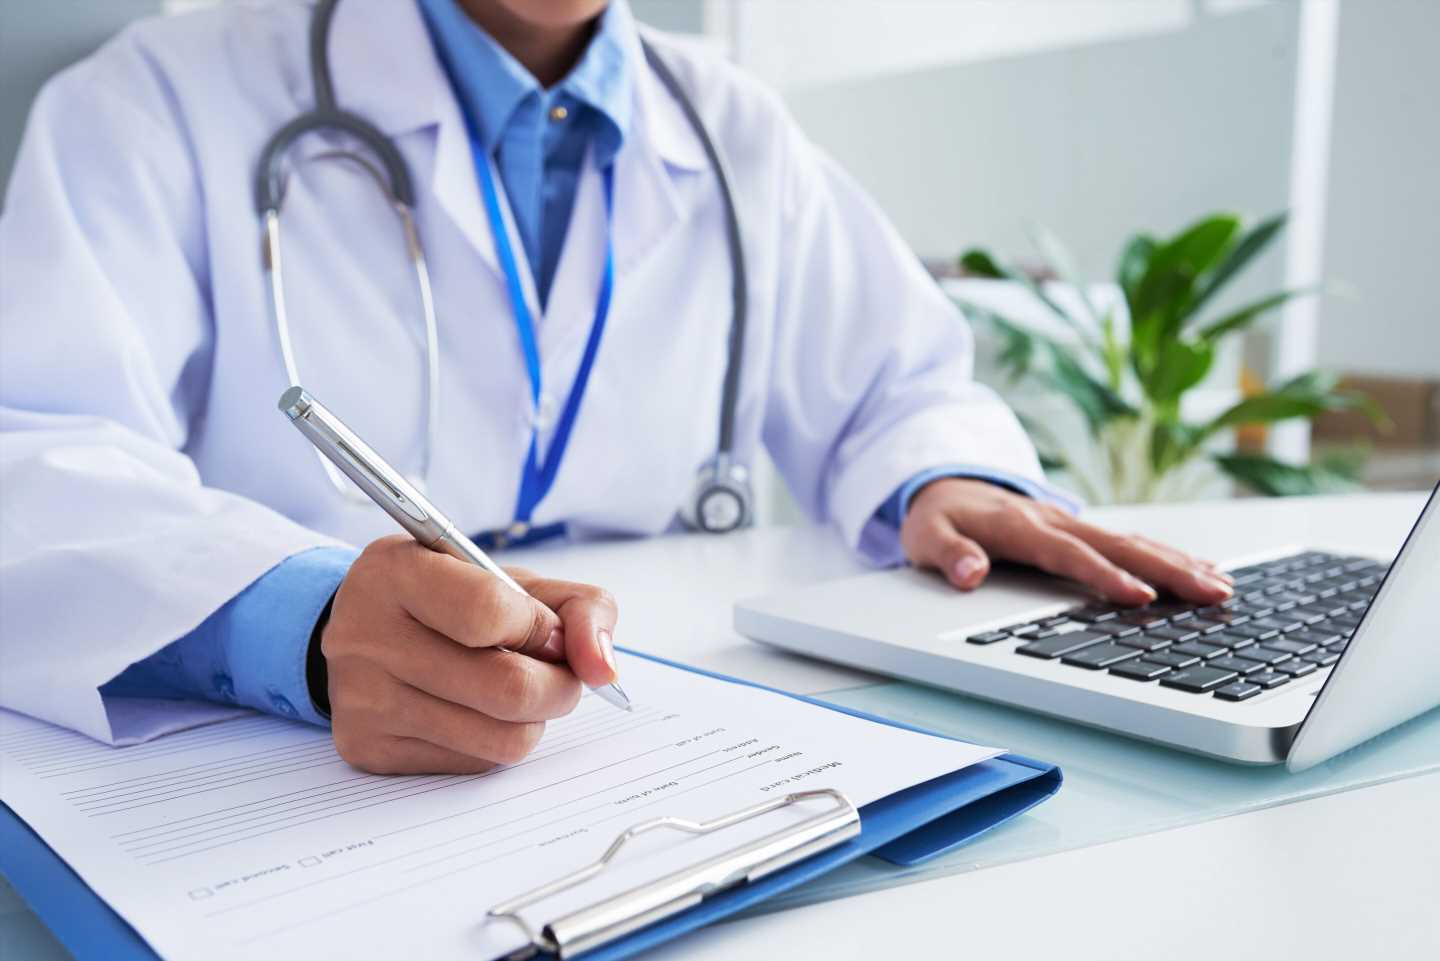 Study finds men do go to the doctor